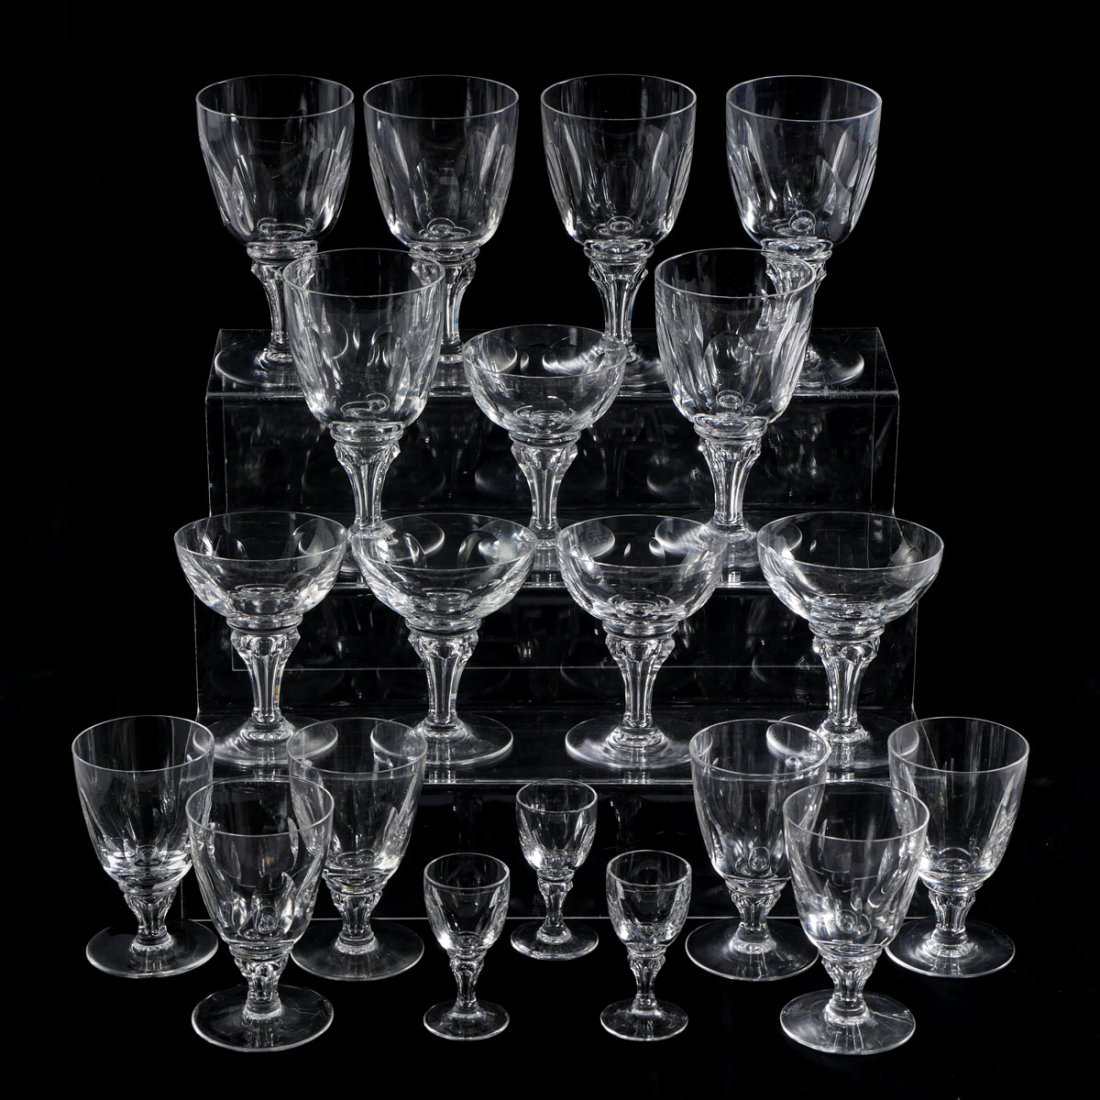 20 PC COLLECTION MAASTRICHT CRYSTAL STEMWARE